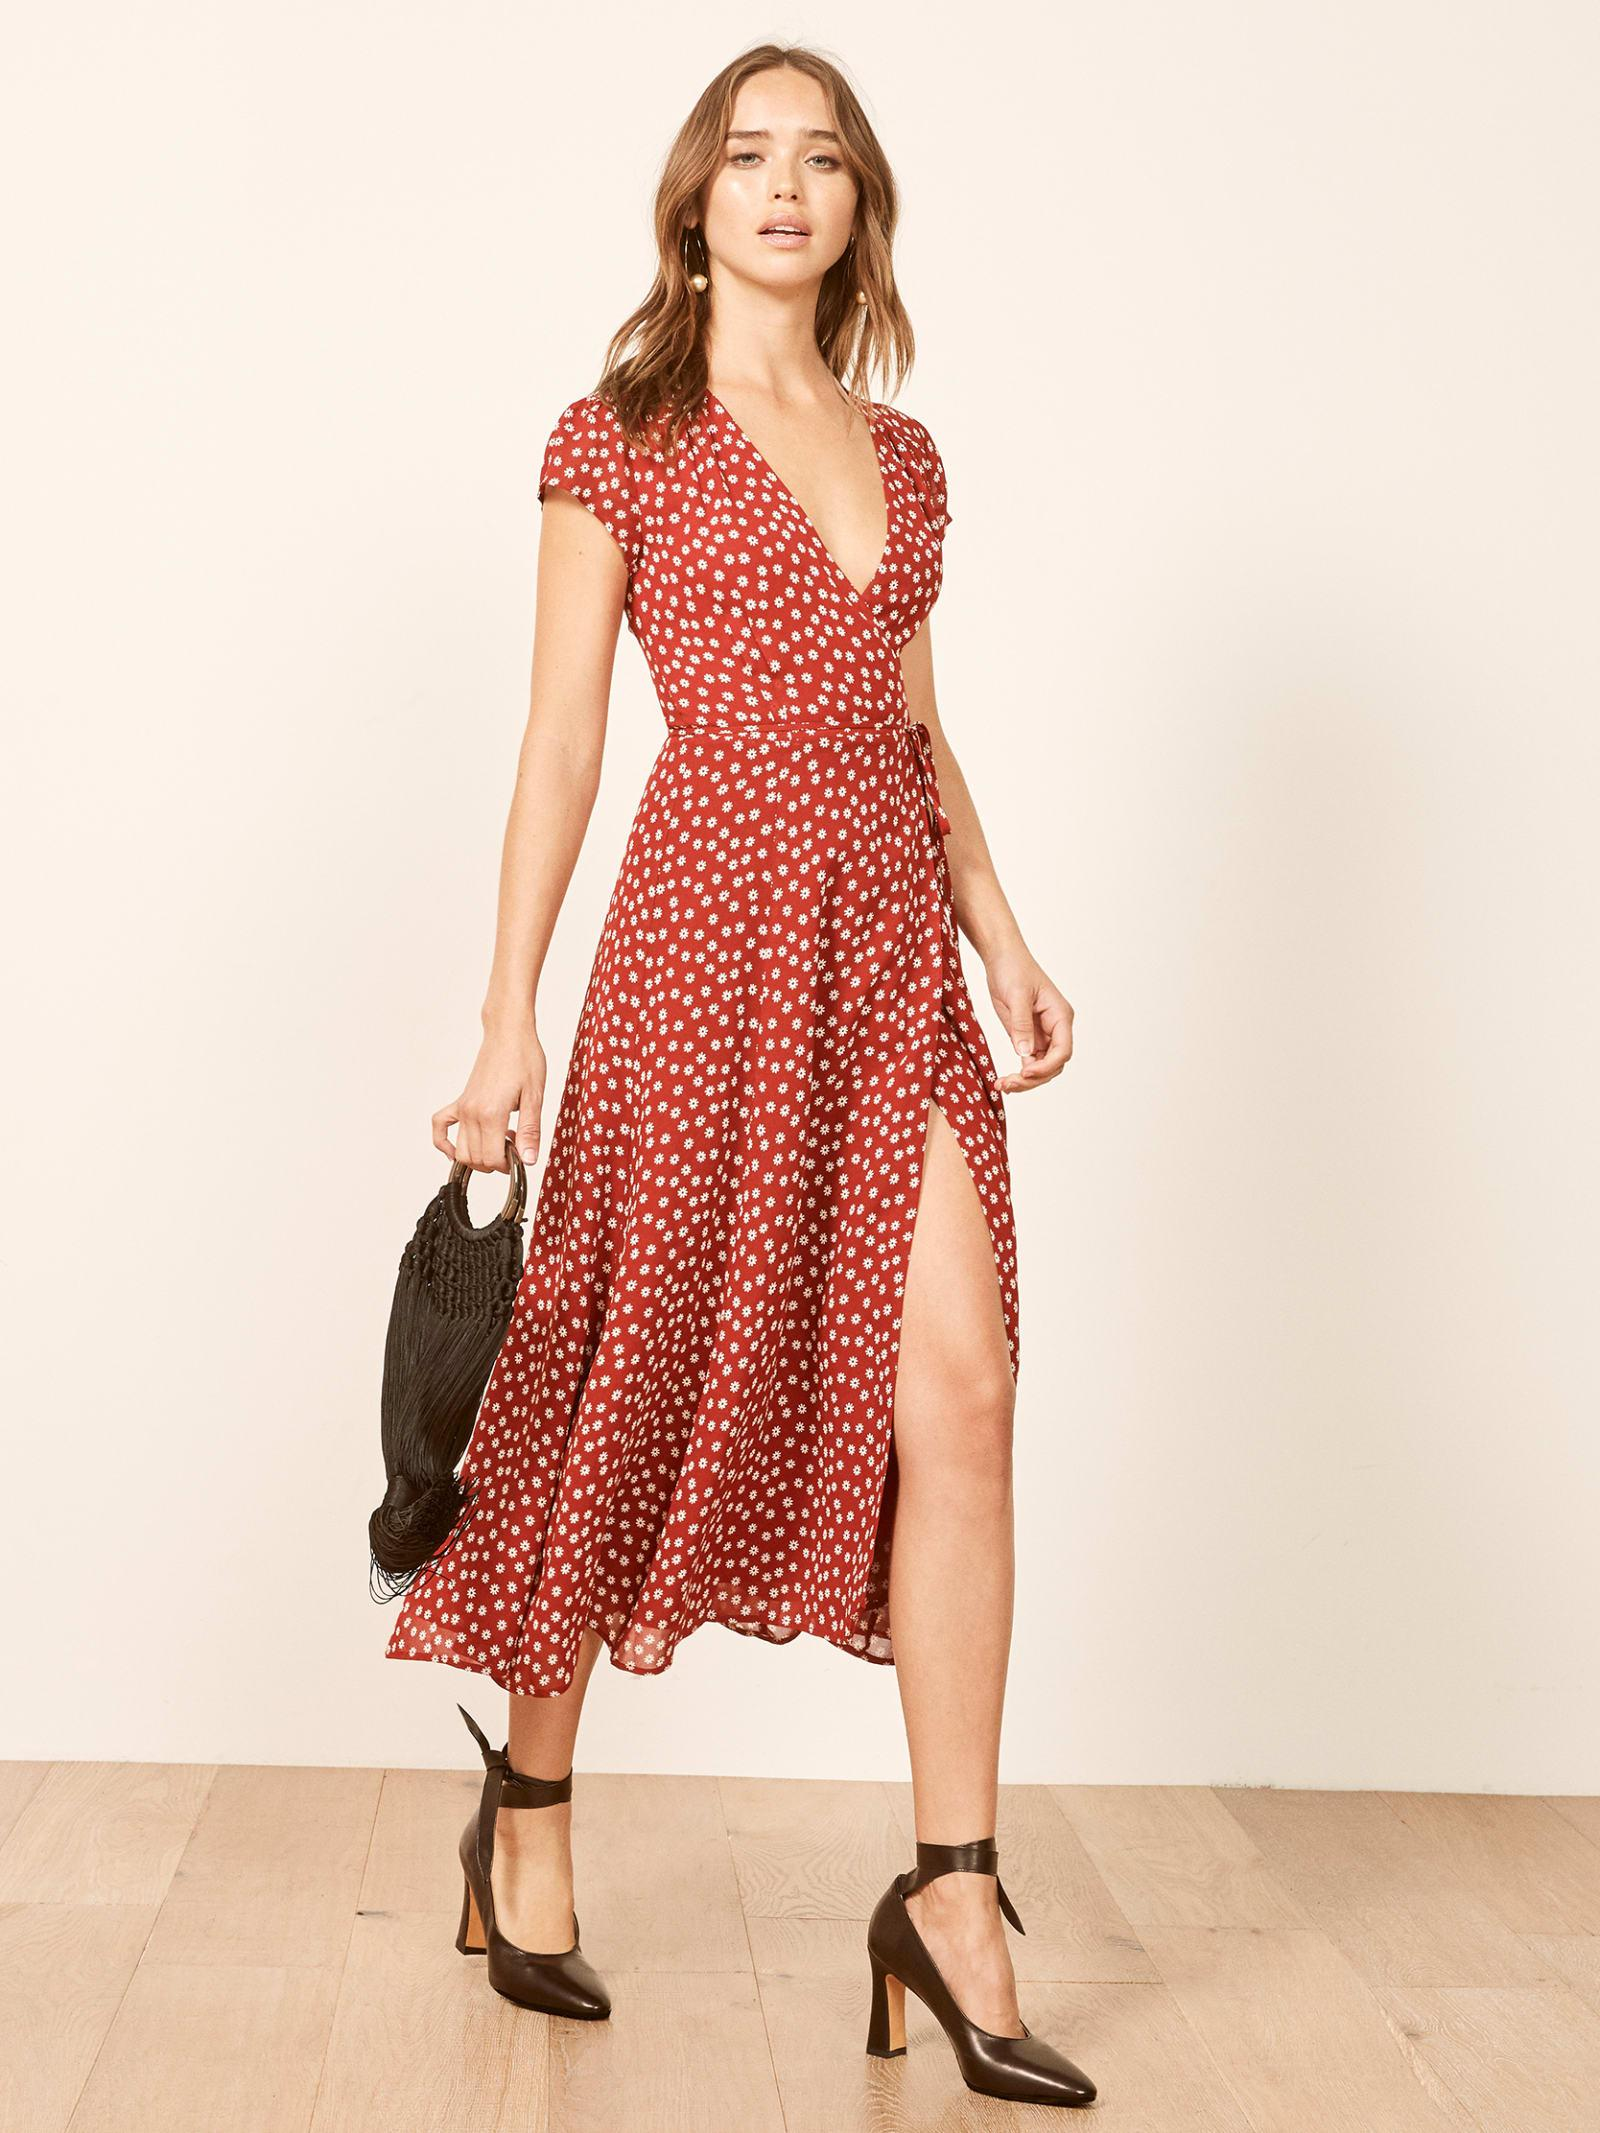 29c8f829a60 Reformation Petites Carina Dress in Red - Lyst